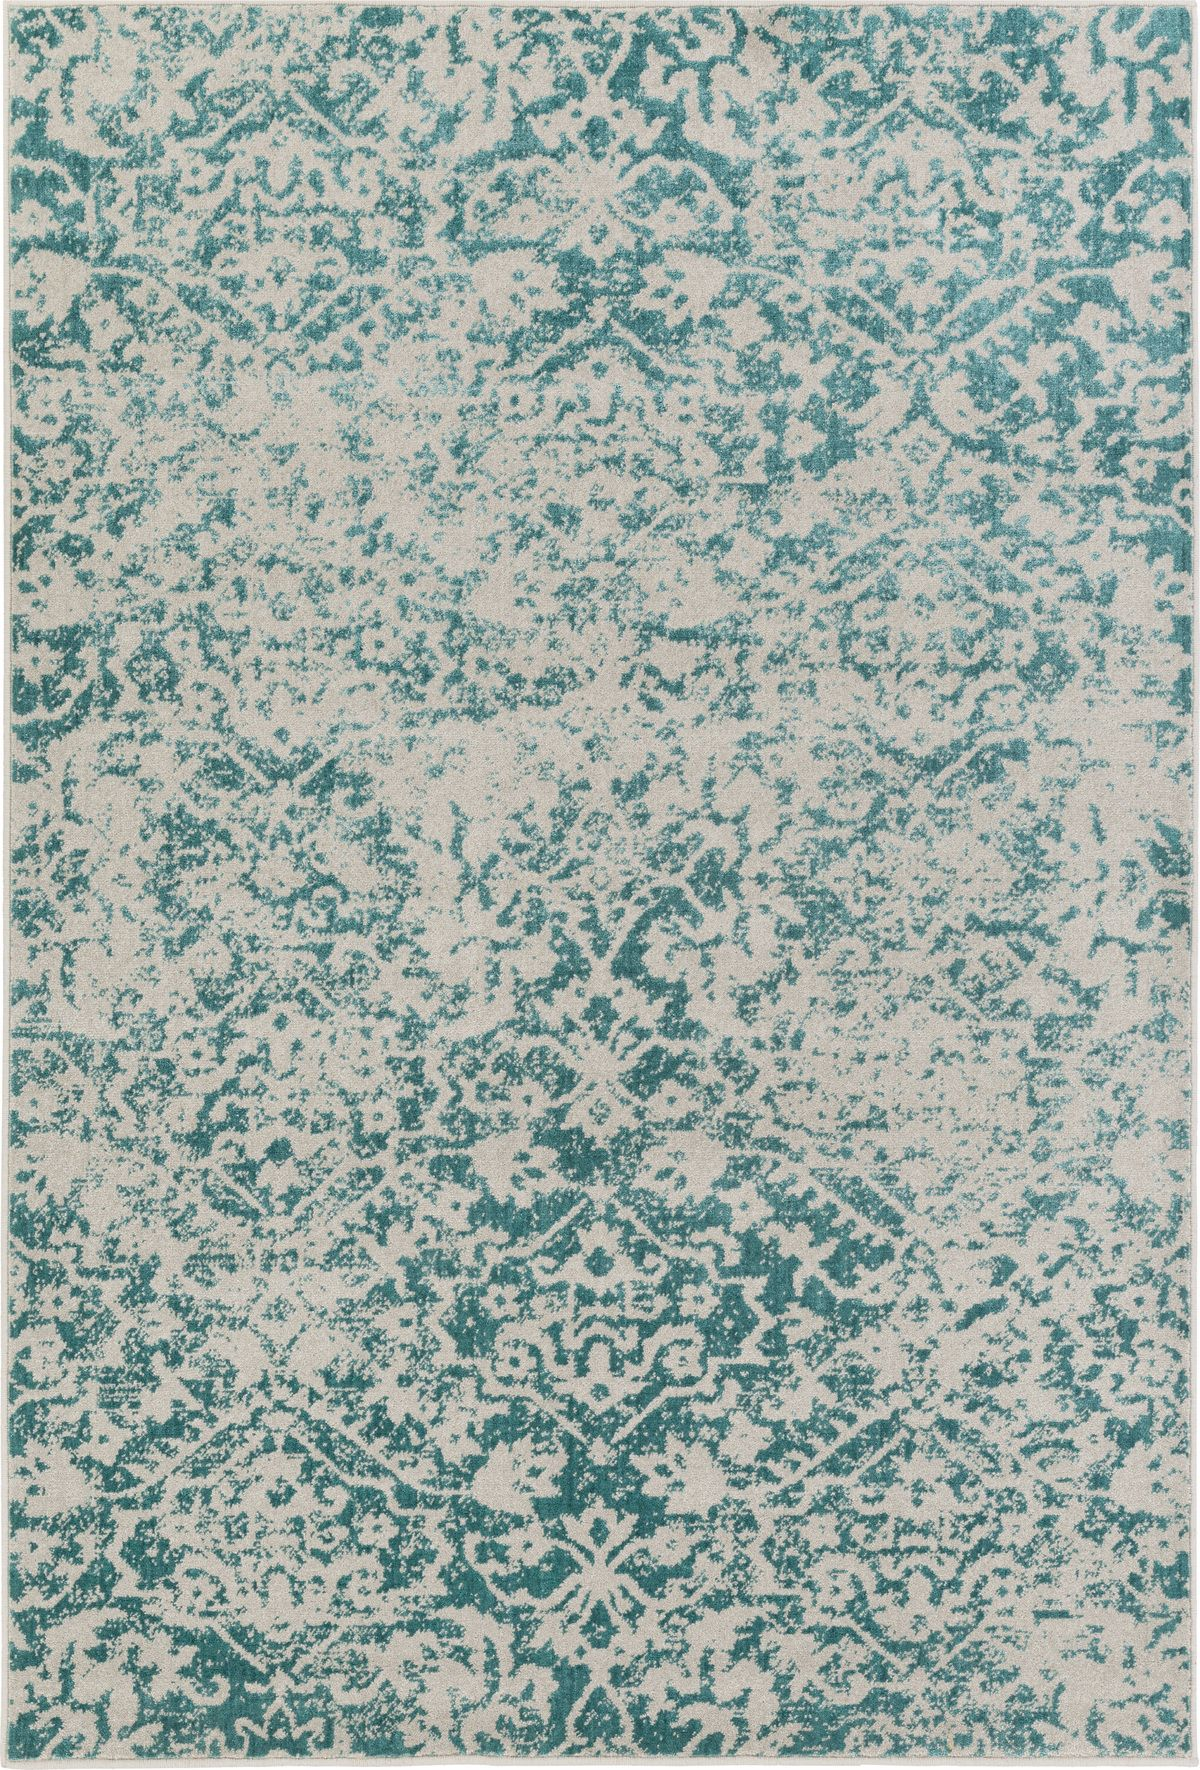 Sro 1019 Color Light Gray Teal Size 1 10 X 2 11 In 2020 Area Rugs Rugs Traditional Area Rugs